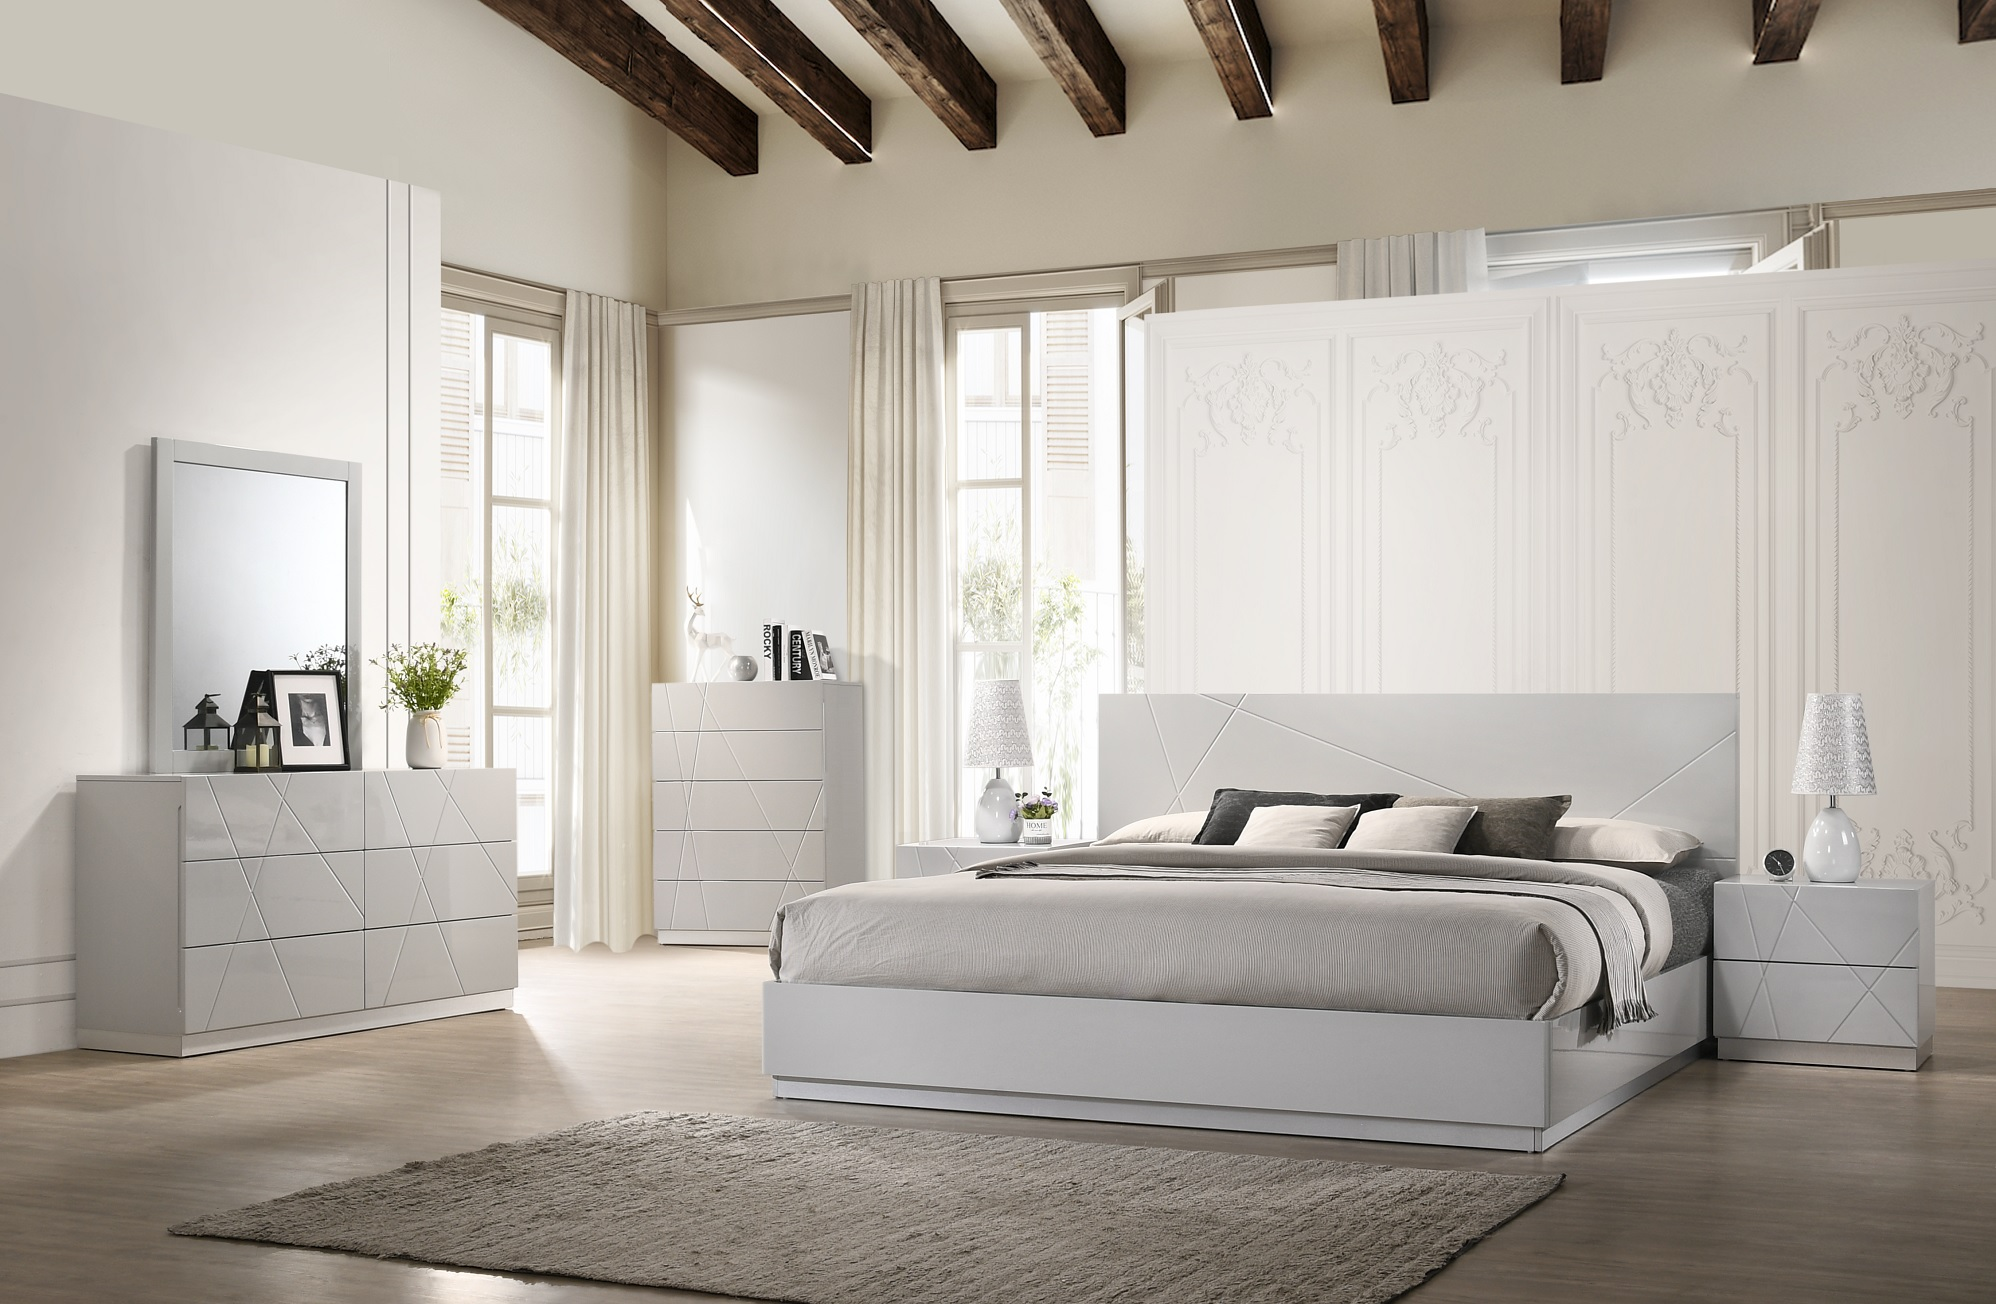 Exquisite Quality Contemporary Bedroom Sets Houston Texas